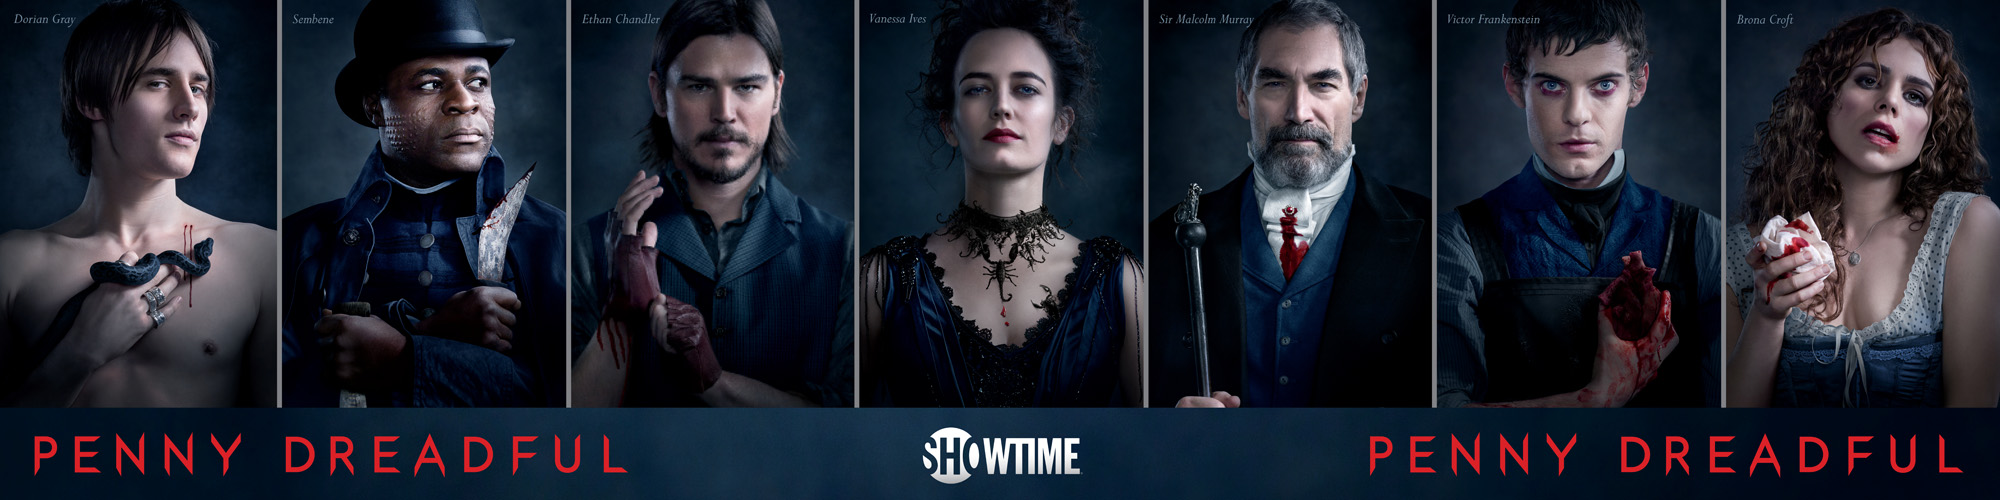 jim fiscus shoots key art for showtime s new series penny dreadful stockland martel blog. Black Bedroom Furniture Sets. Home Design Ideas